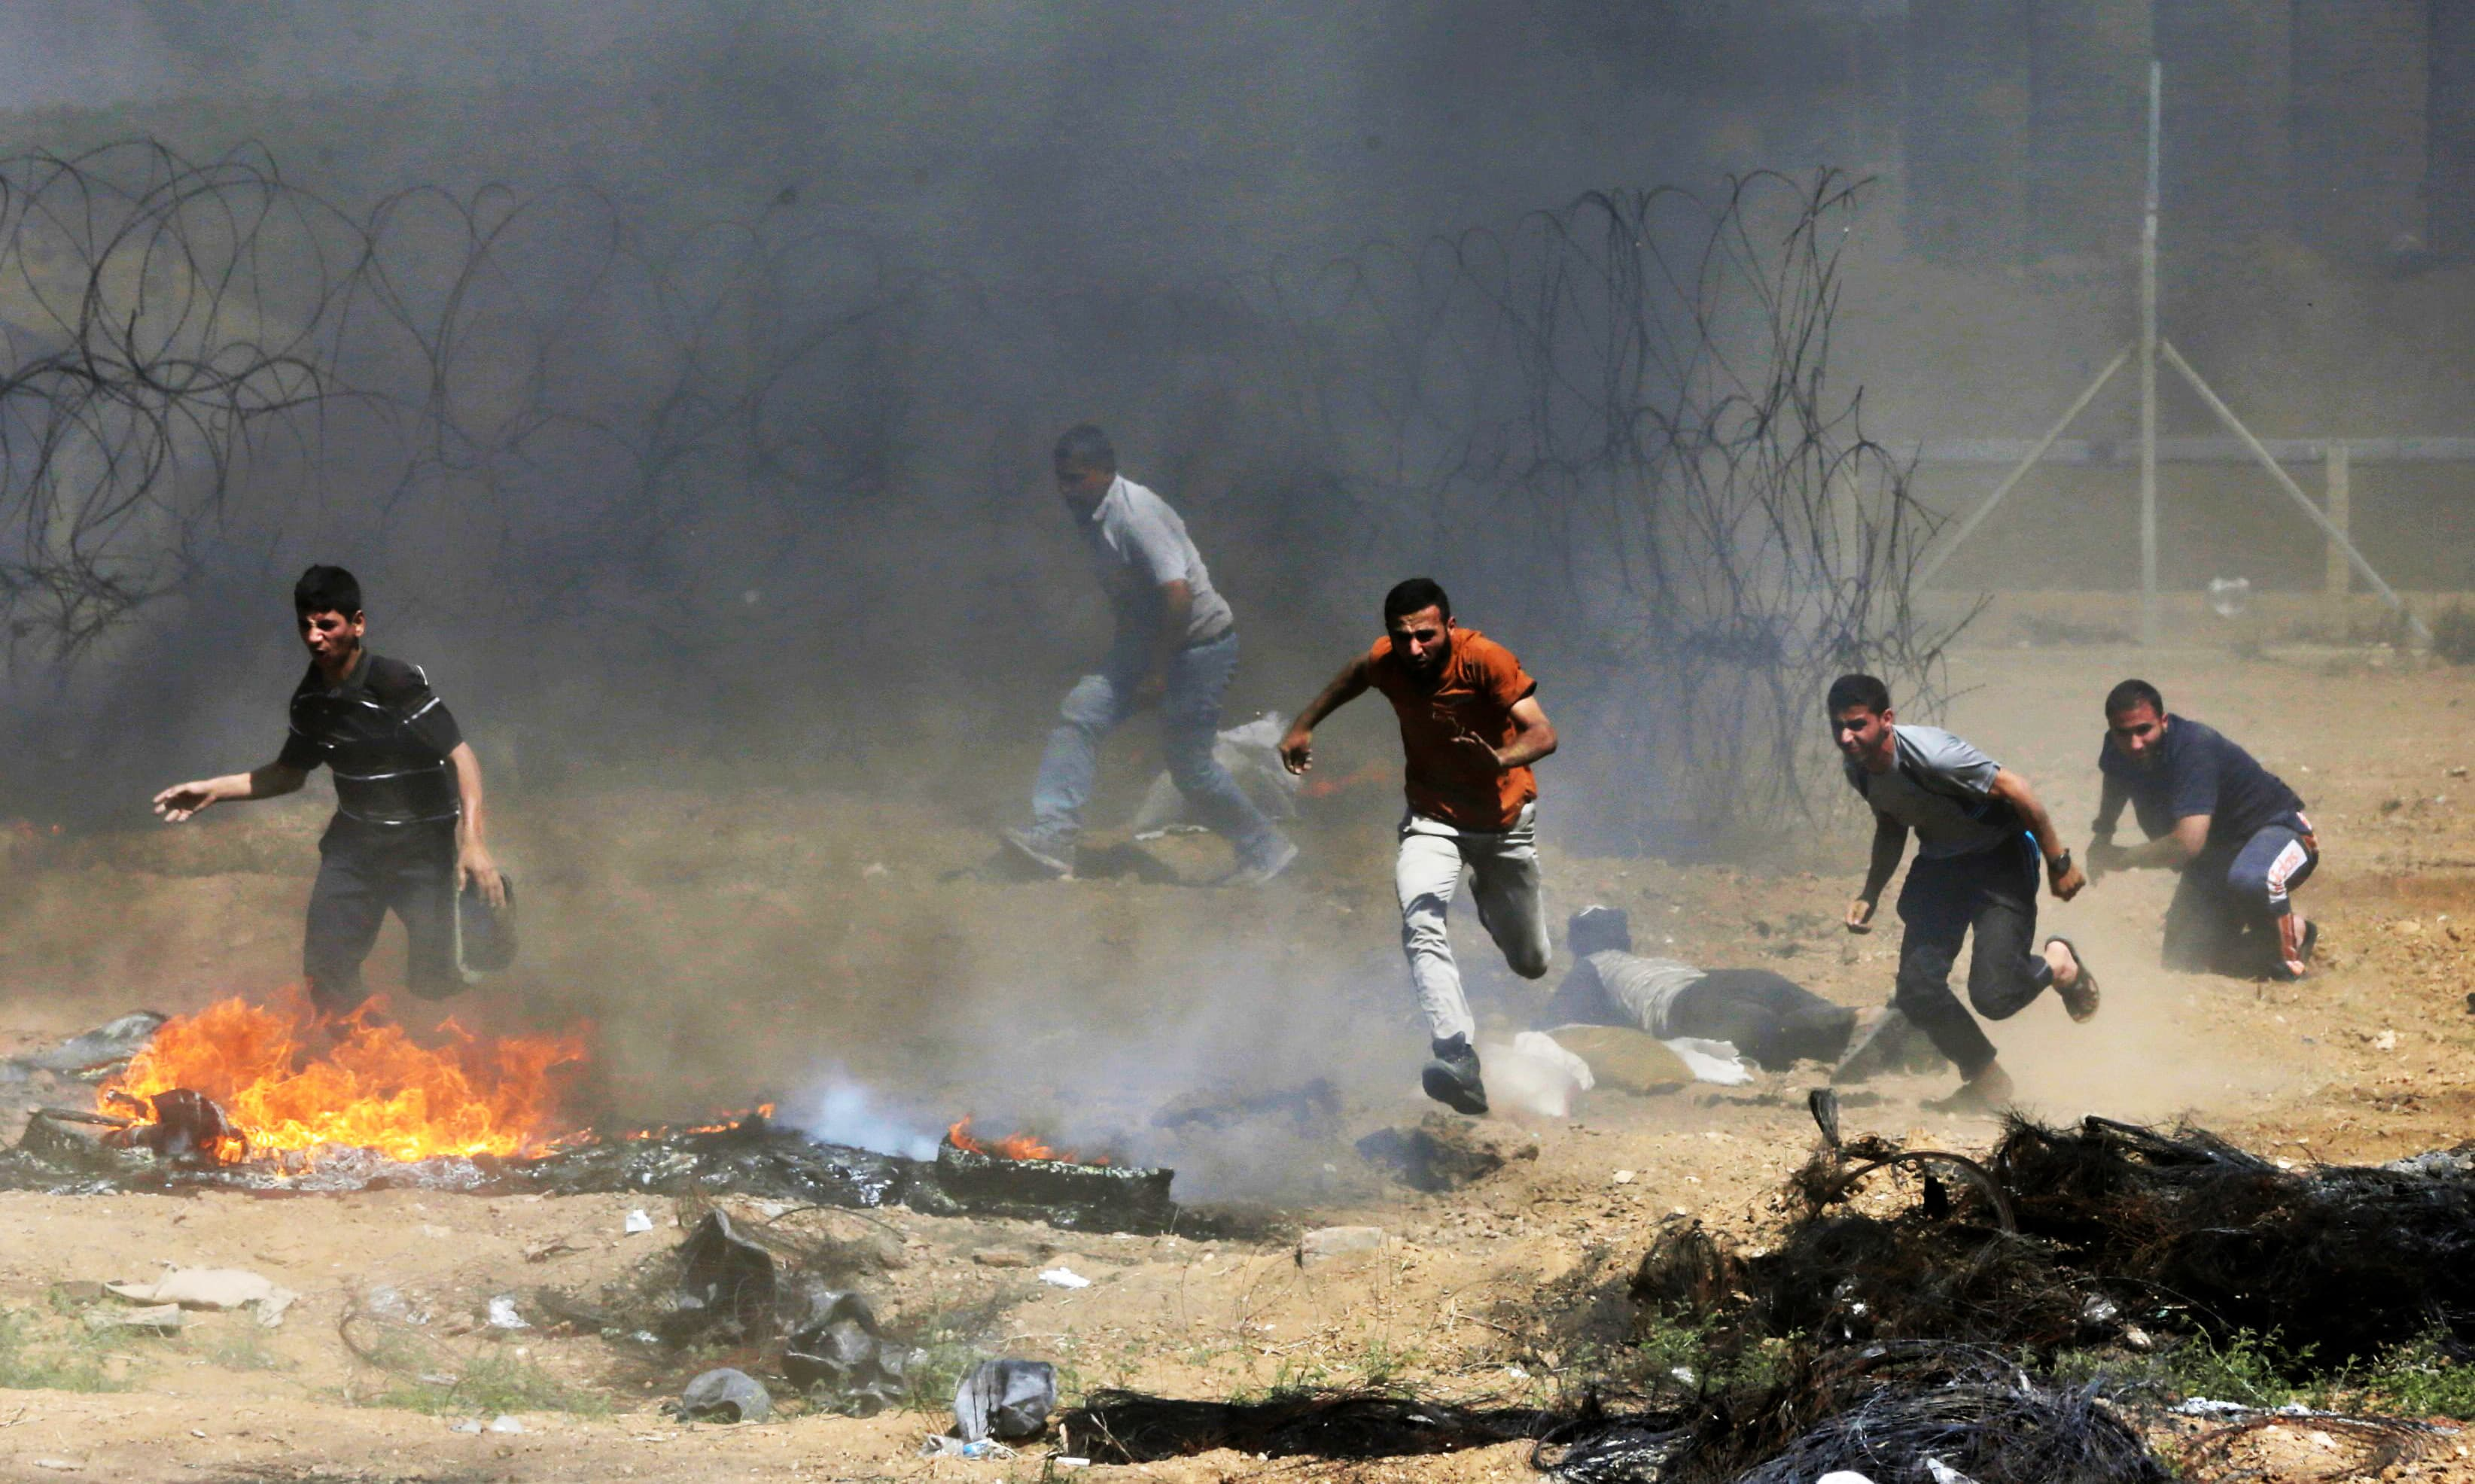 Palestinian protesters run for cover as smoke billows from burning tyres. —AFP